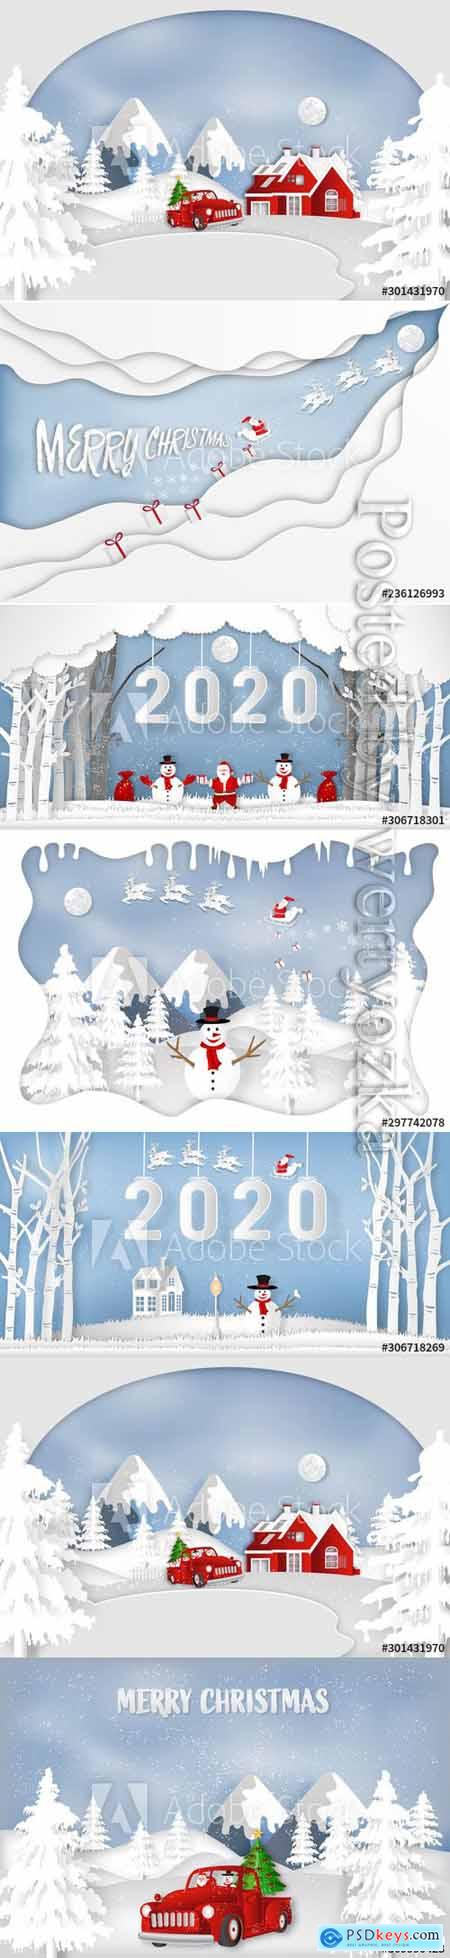 Paper art christmas, cut and digital craft style of Santa